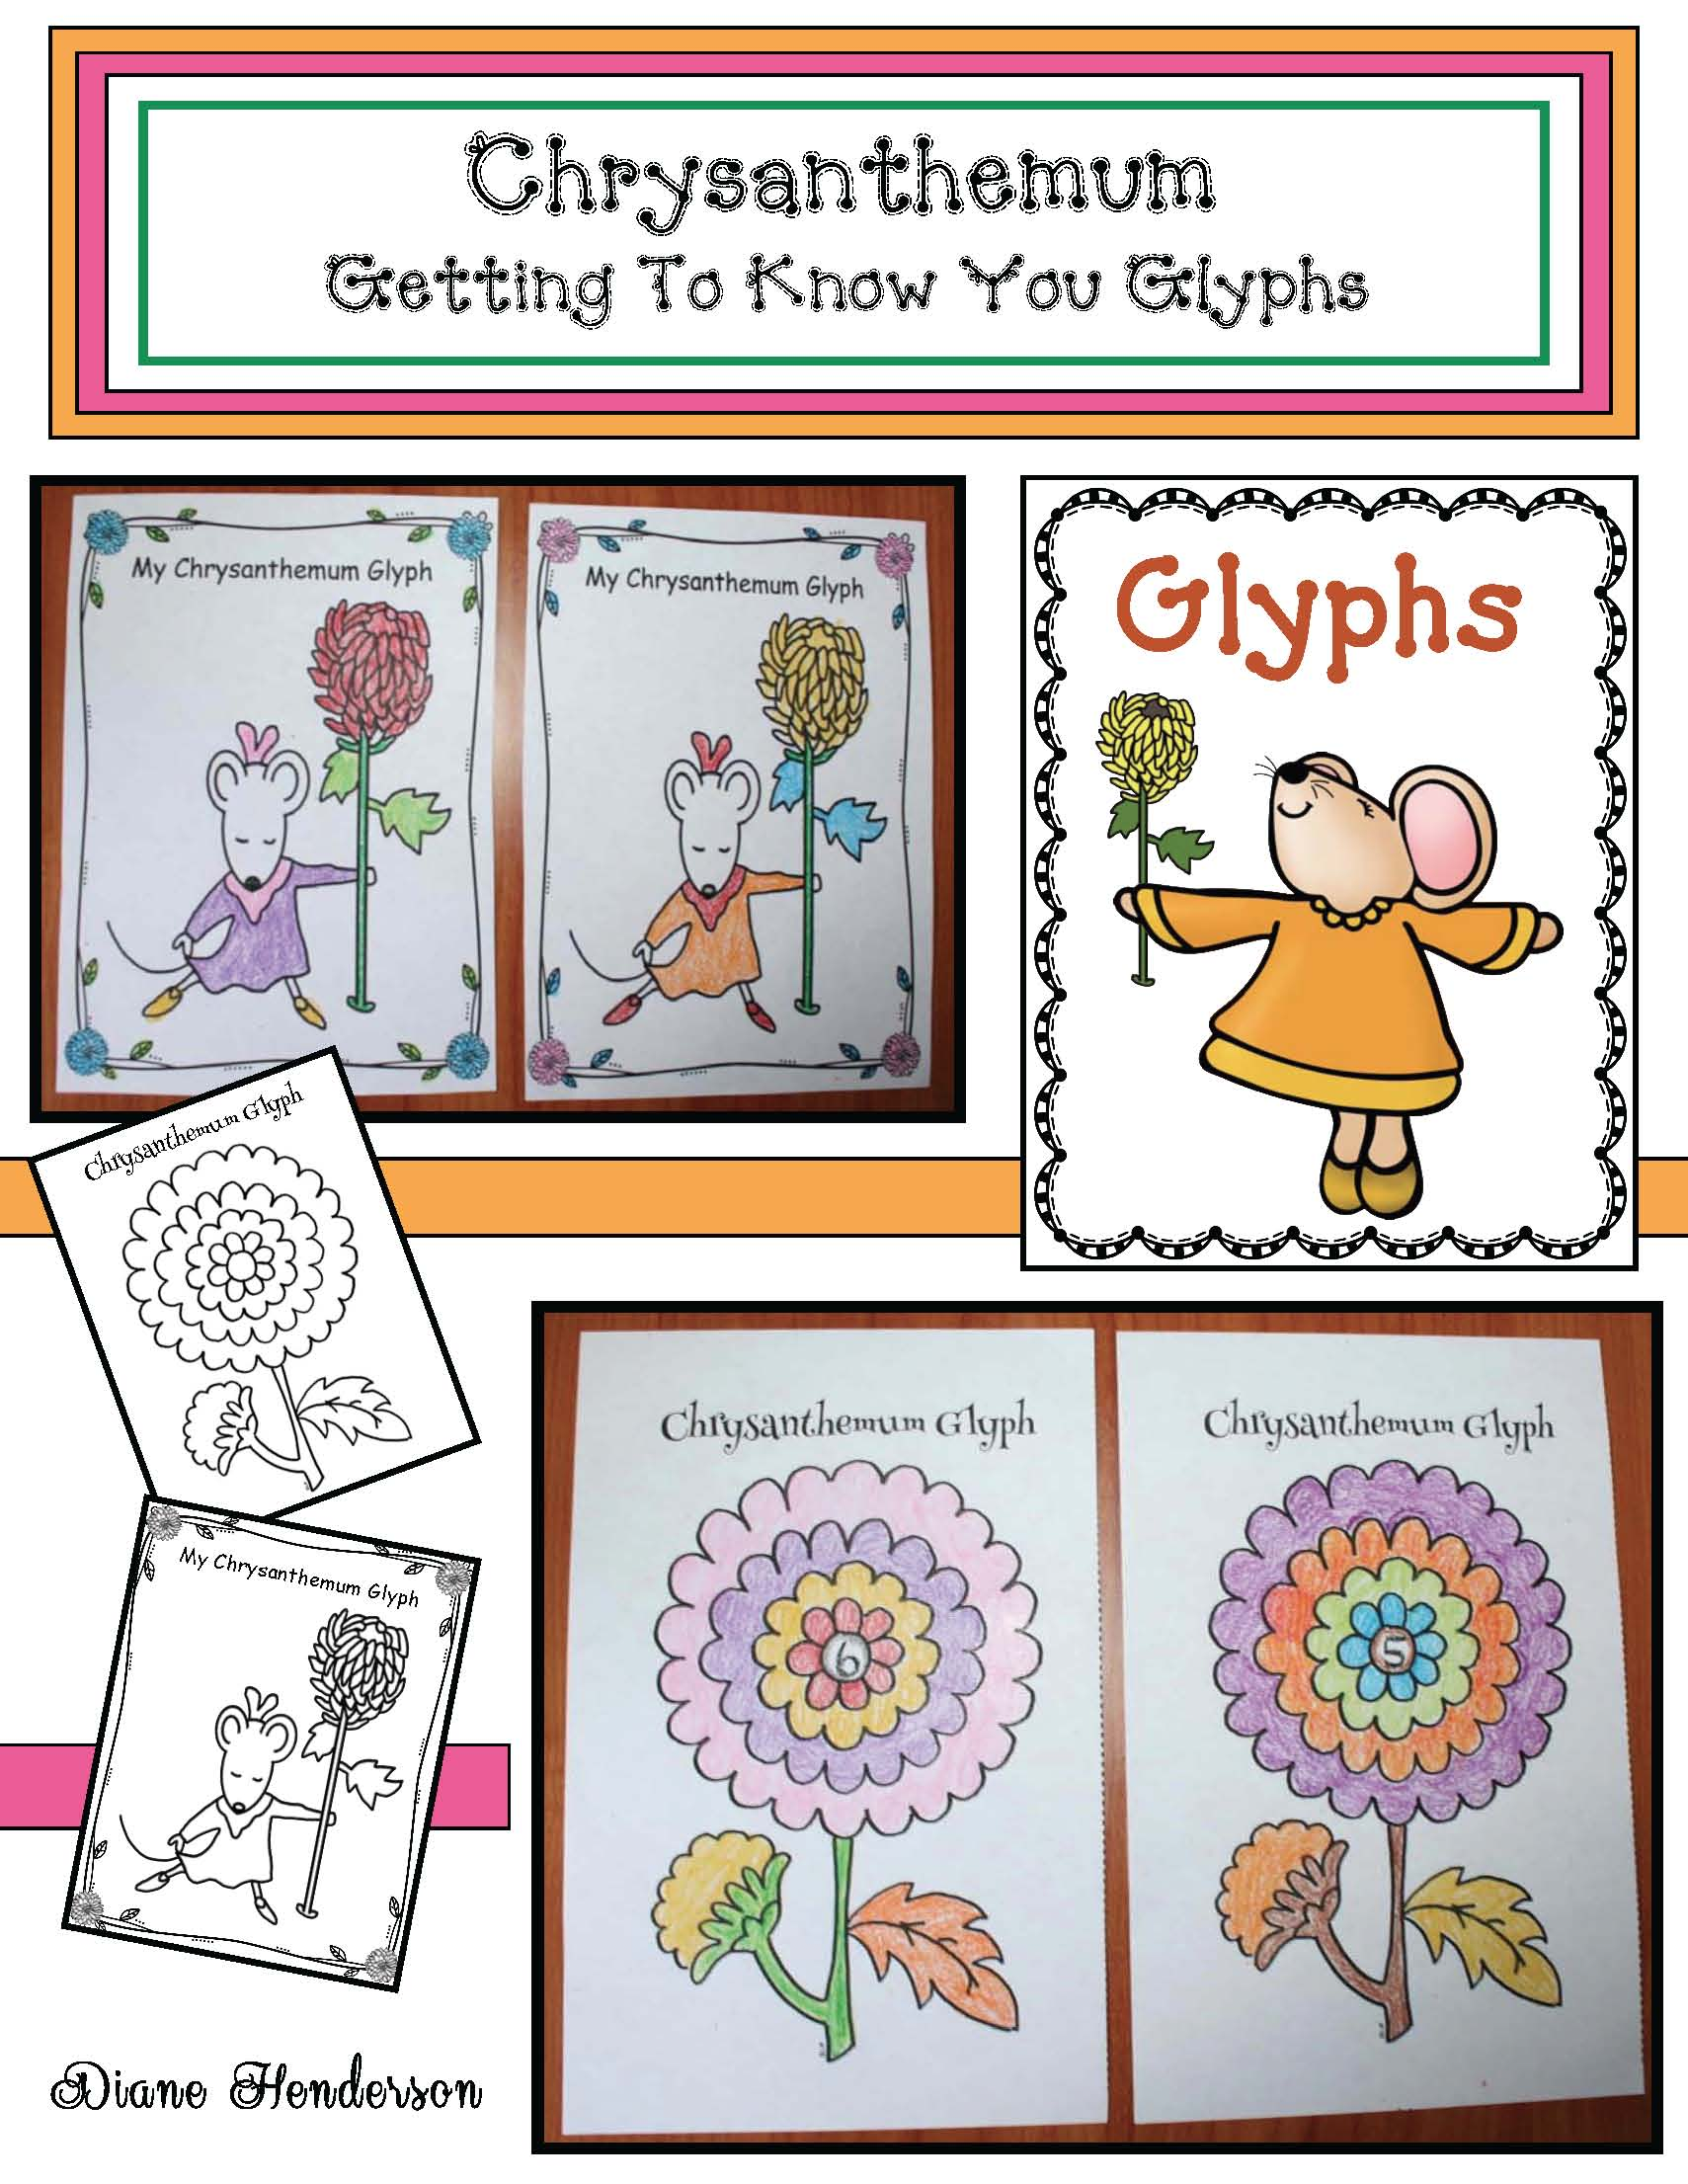 Chrysanthemum activities, chrysanthemum centers, chrysanthemum games, chrysanthemum glyph, back to school activities, first day of school activities, glyphs, glyphs for back to school, fix the sentence activities, Kevin Henkes' book activities